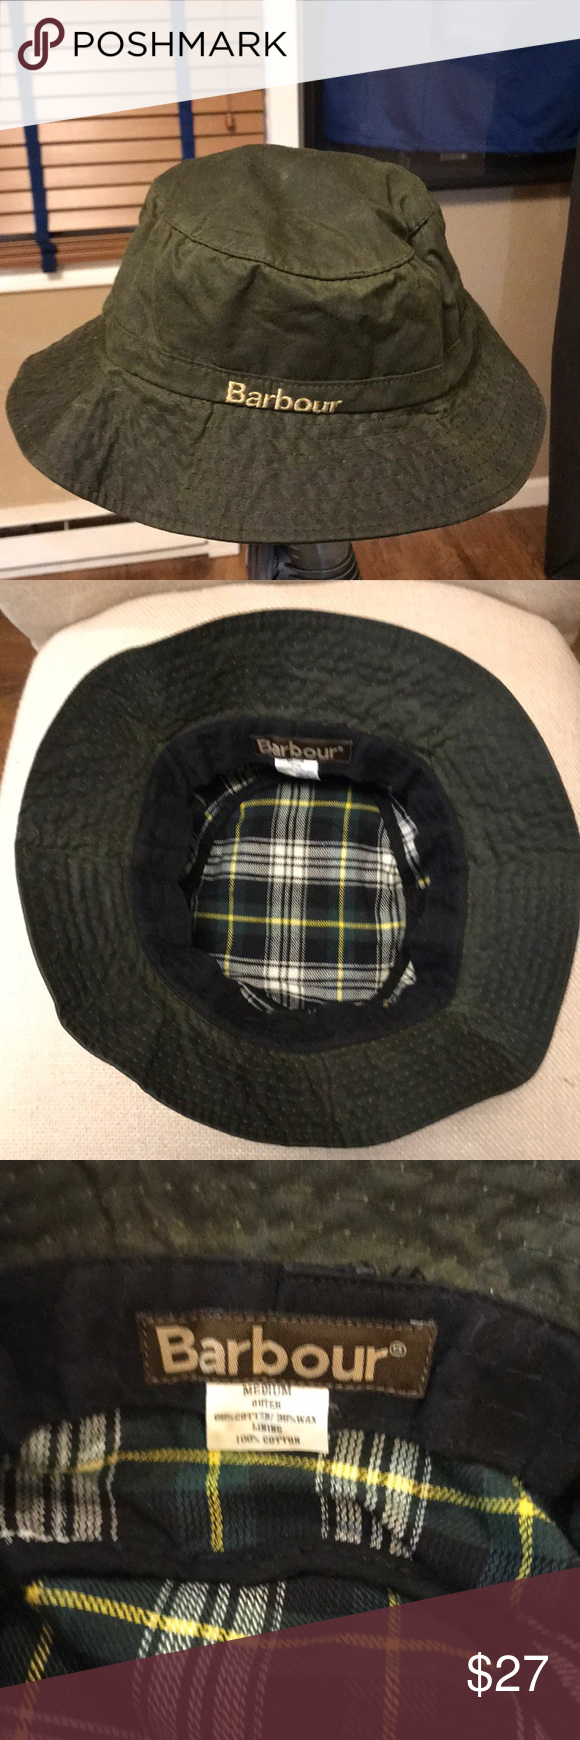 8ebdfe76825 BARBOUR® DEVON SPORTS HAT Water-repelling waxed cotton takes this  bucket-style sports